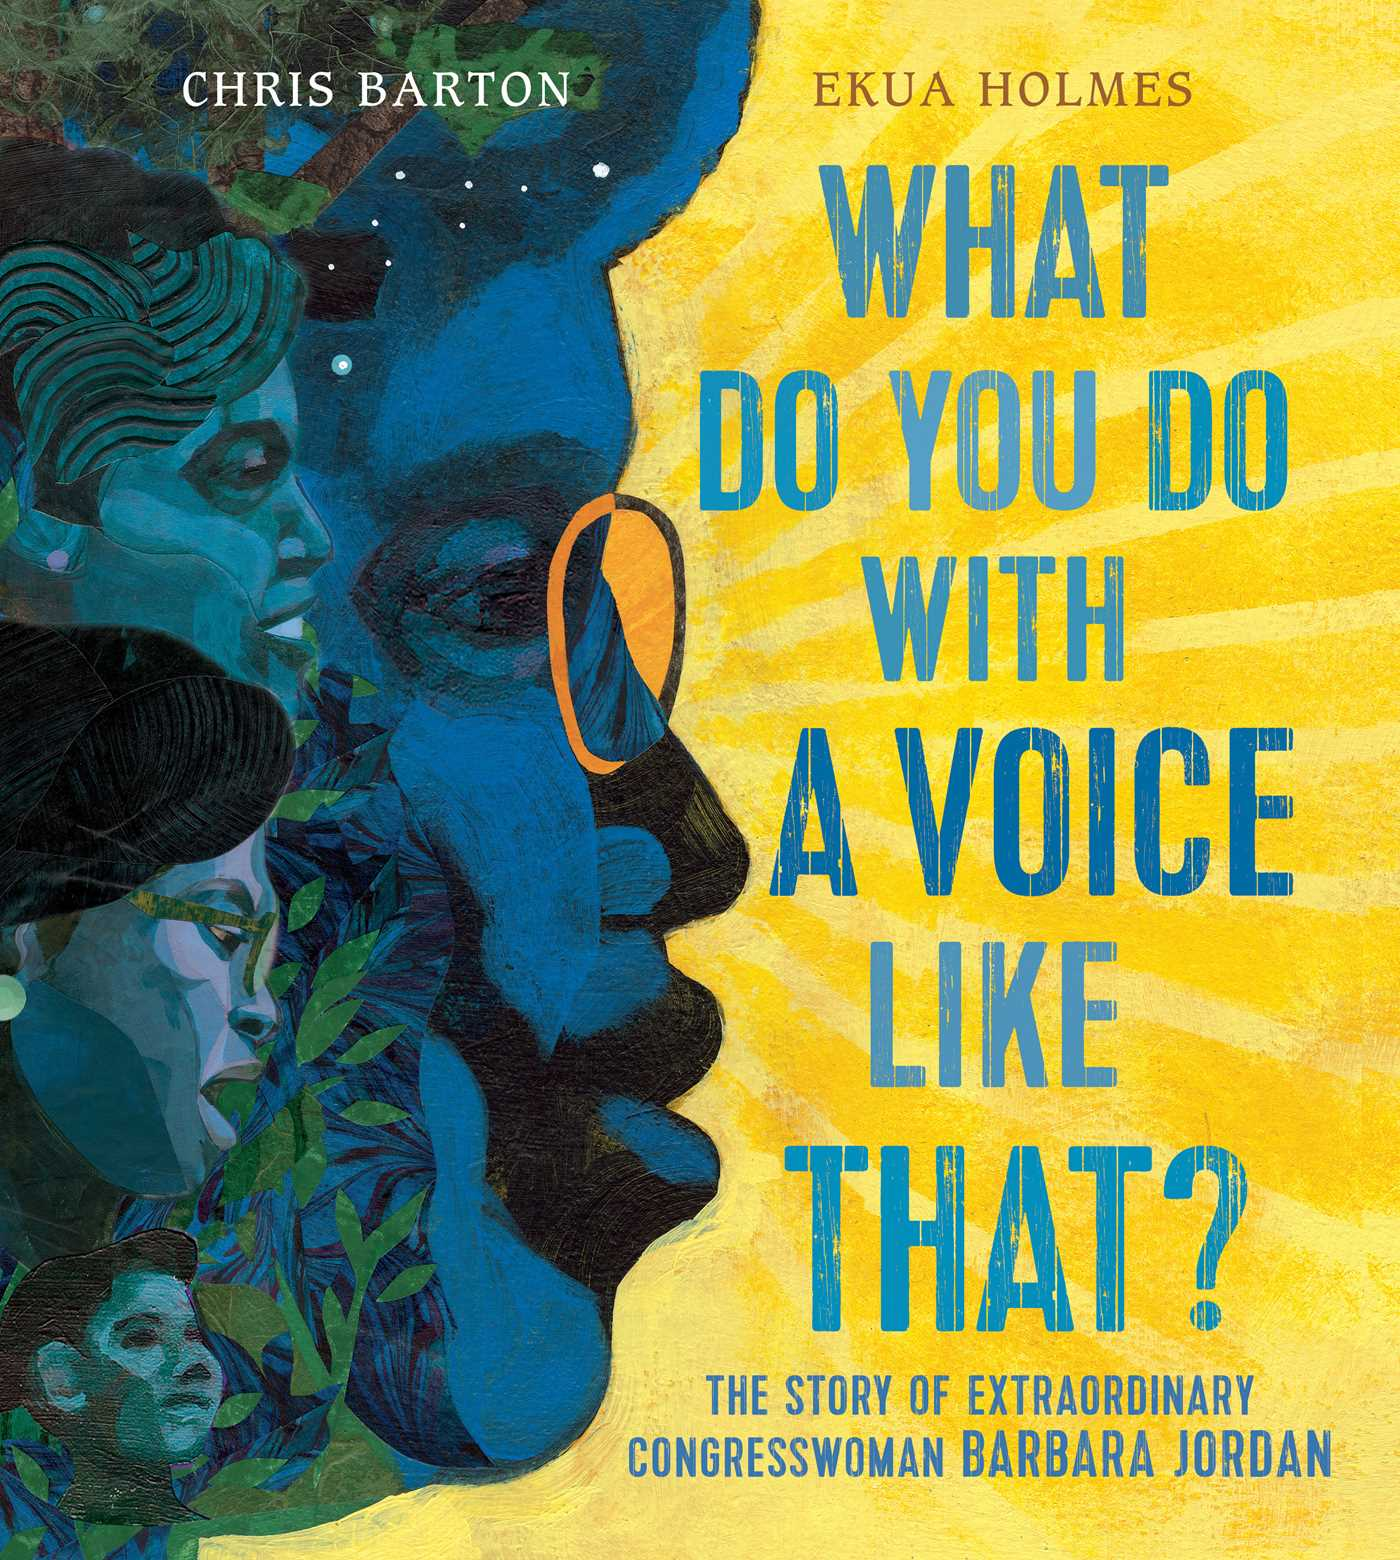 Book trailer and educator's guide for What Do You Do with a Voice Like That?